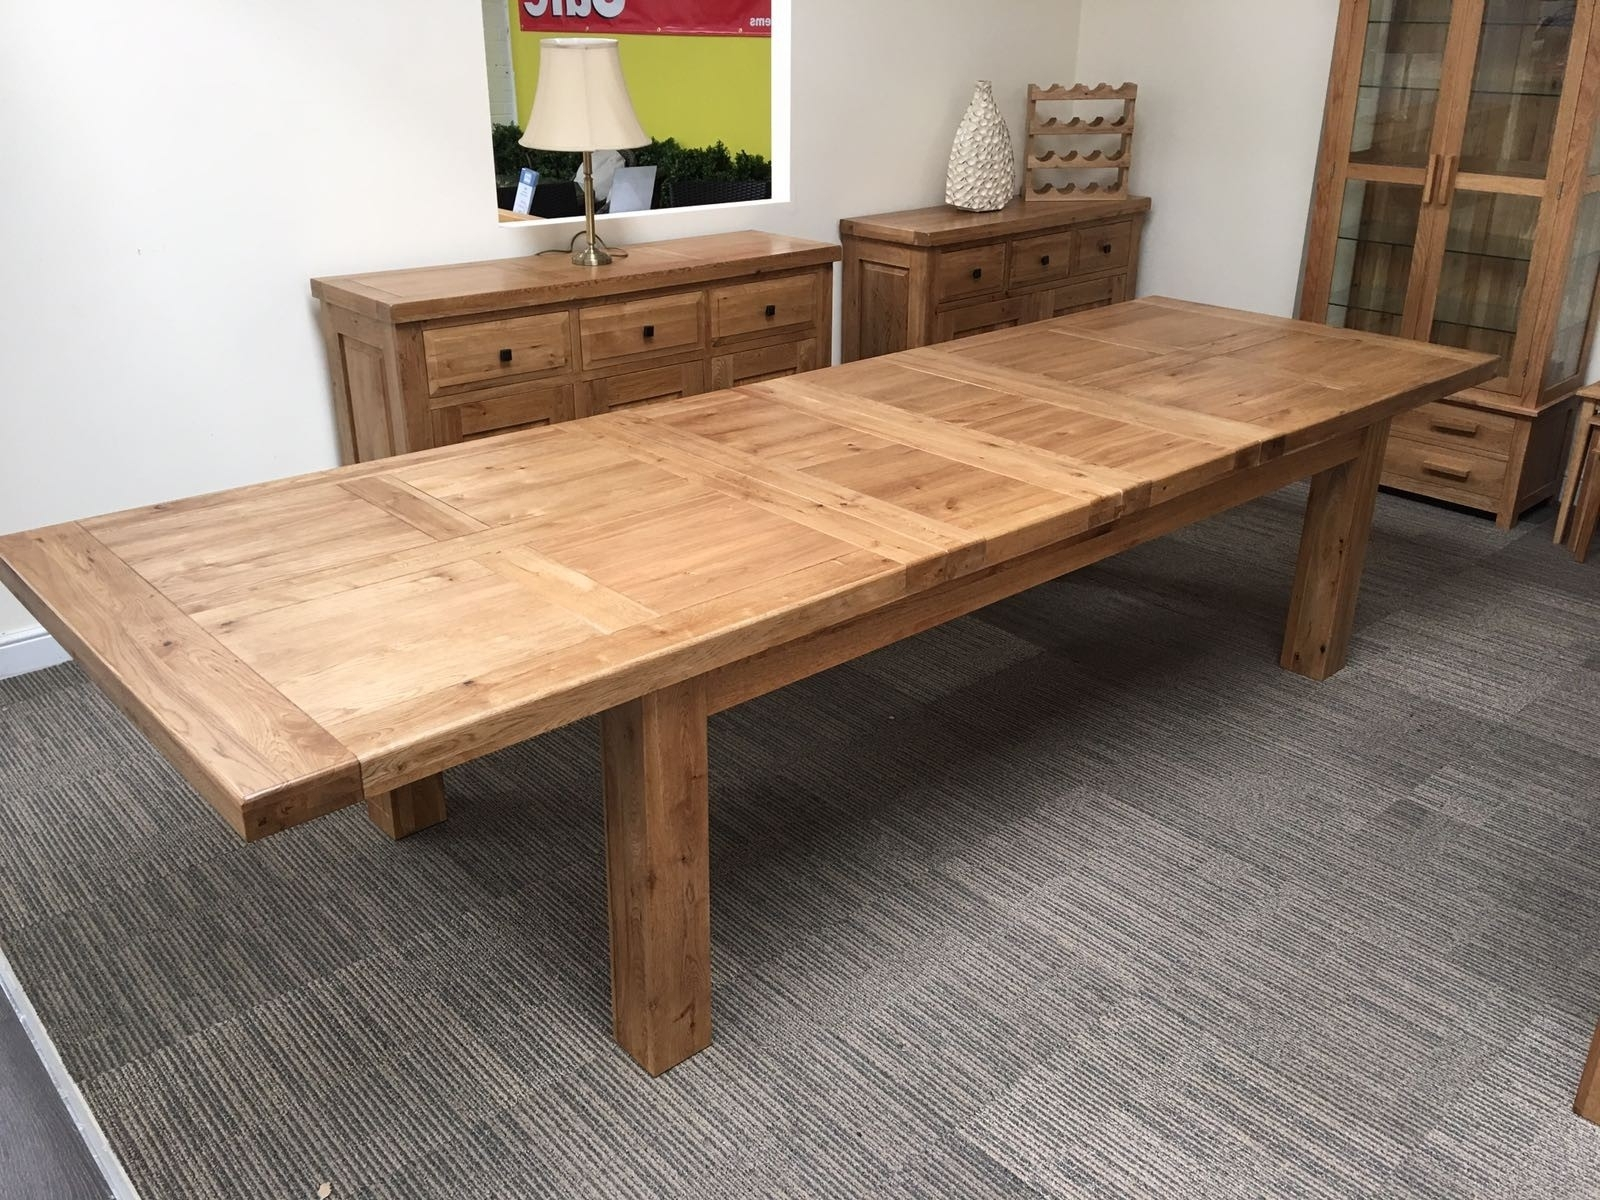 The Making Of The Solid Wood Dining Table – Home Decor Ideas For Preferred Extending Solid Oak Dining Tables (View 2 of 25)